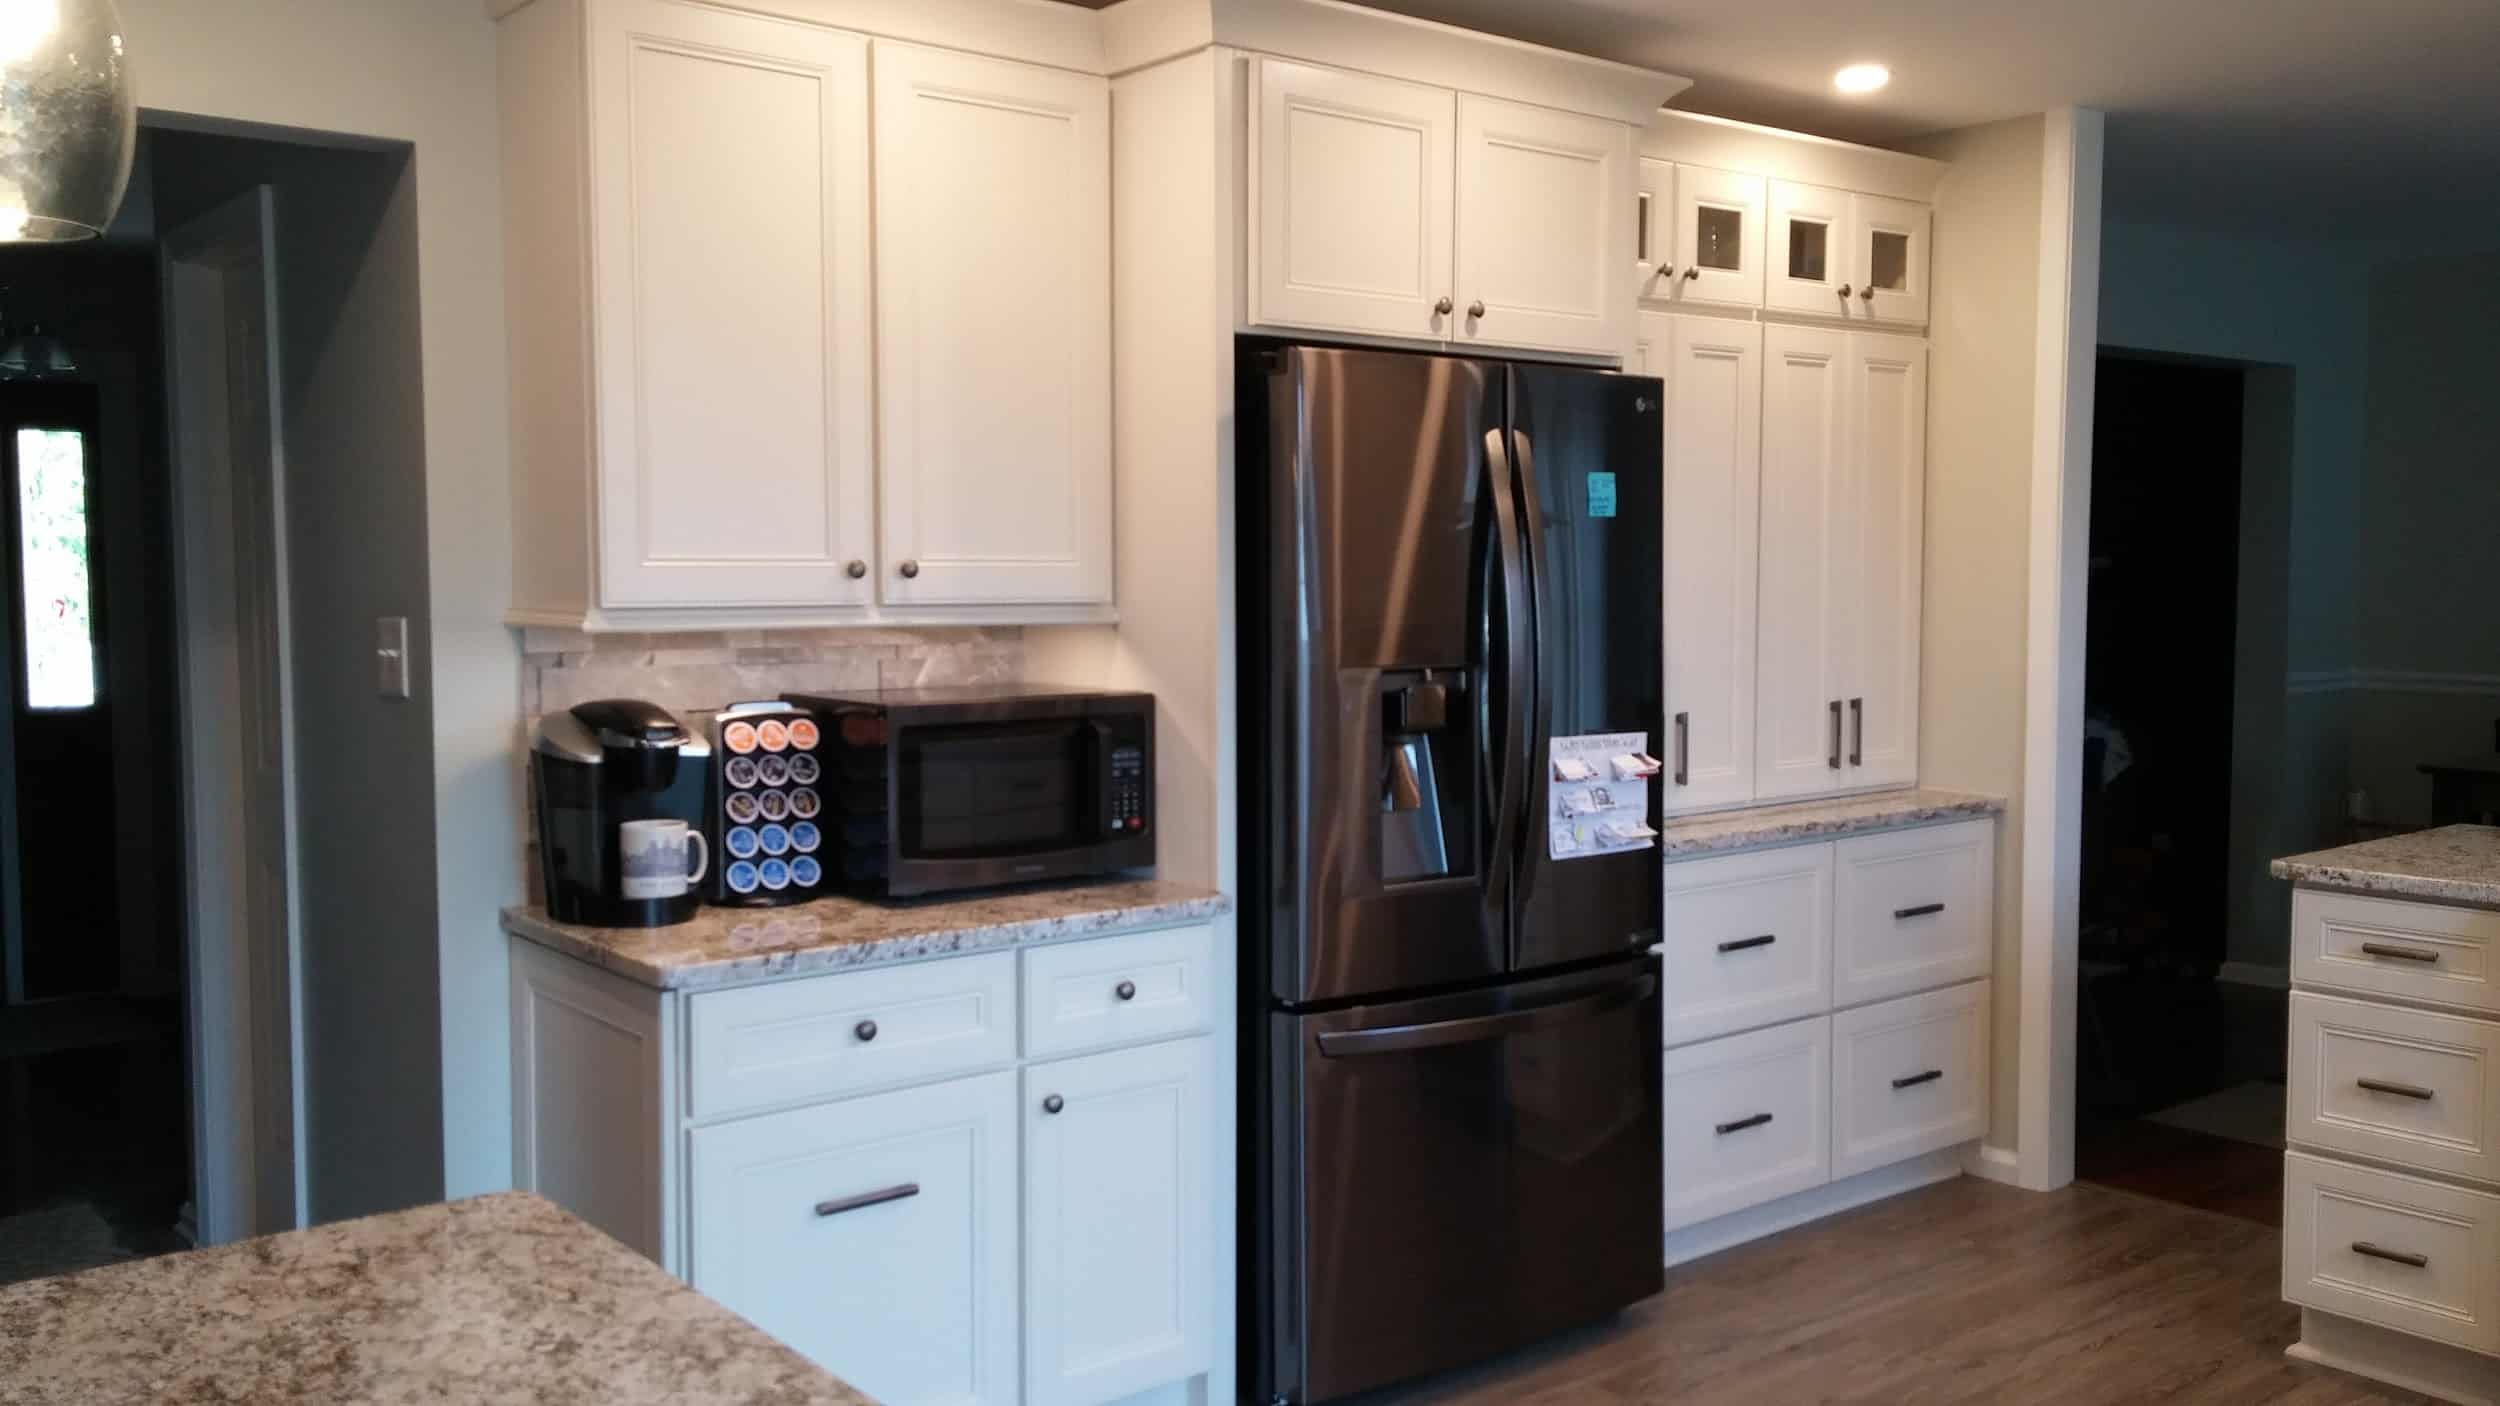 The sleek modern black fridge is perfectly framed with the contrast of white shaker cabinets and drawers that have two types of handles.